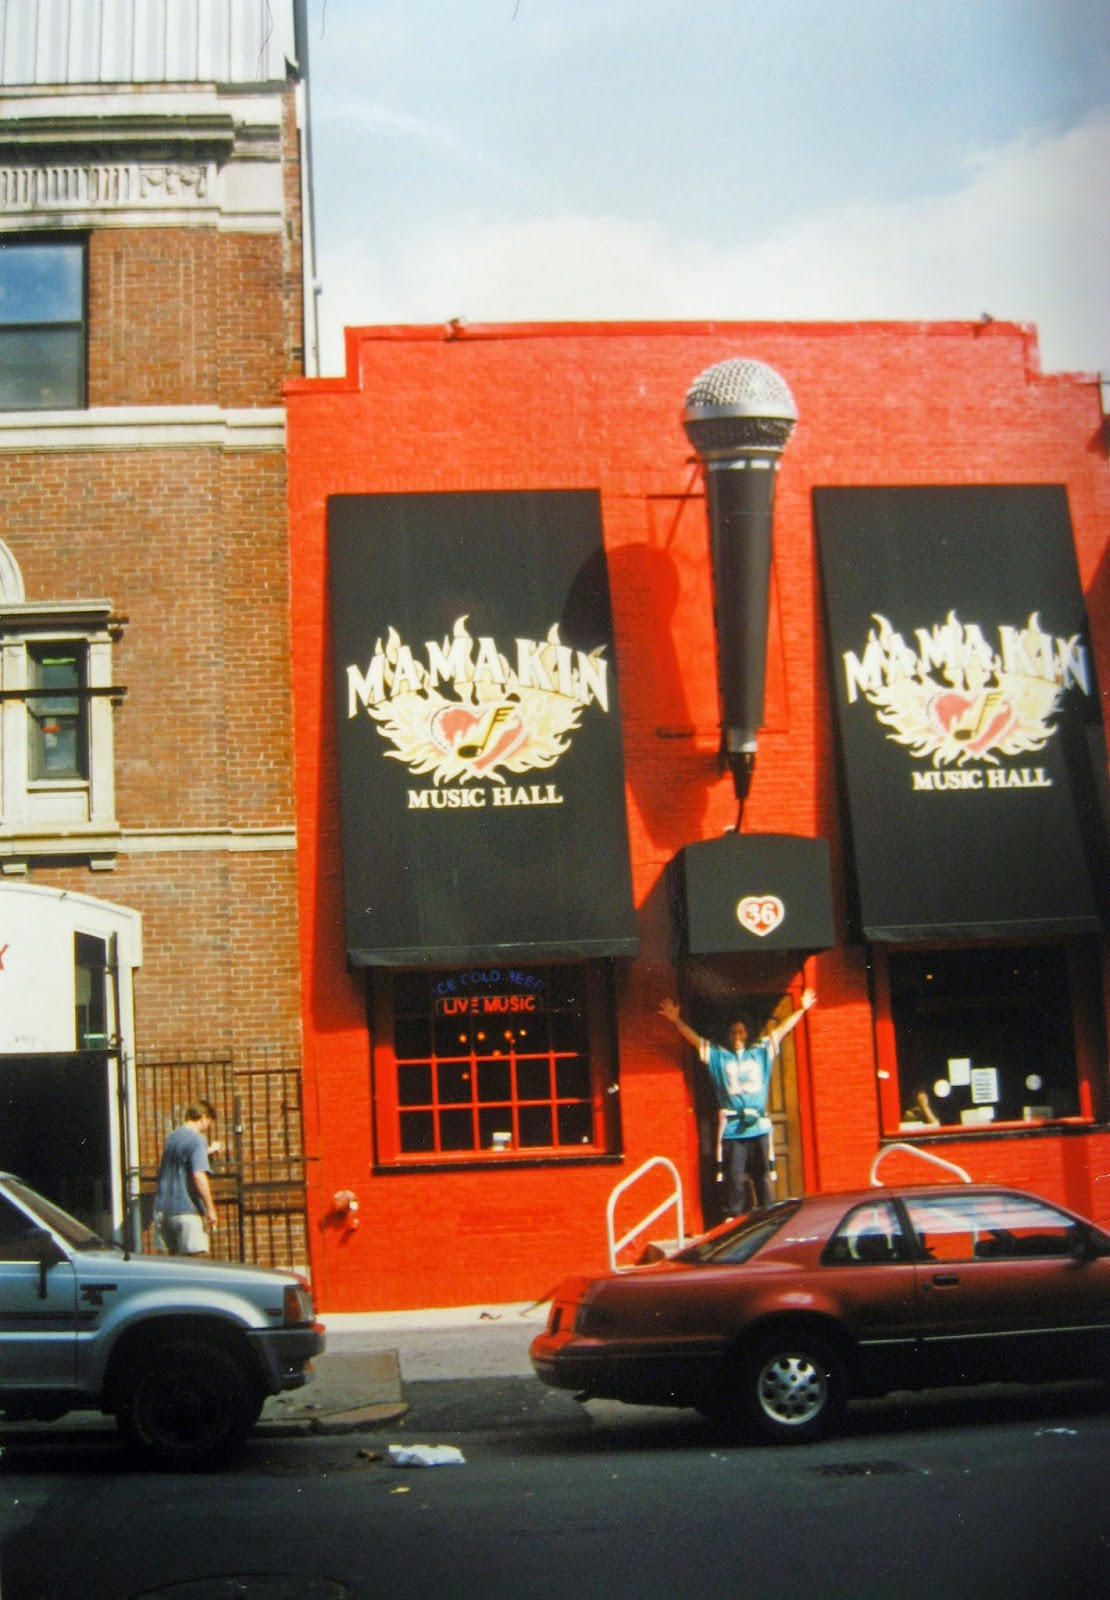 Tommy Mondello outside the Mama Kin rock club that was partially owned by Aerosmith. It was located right across from the back of the Green Monster! Club closed in '98